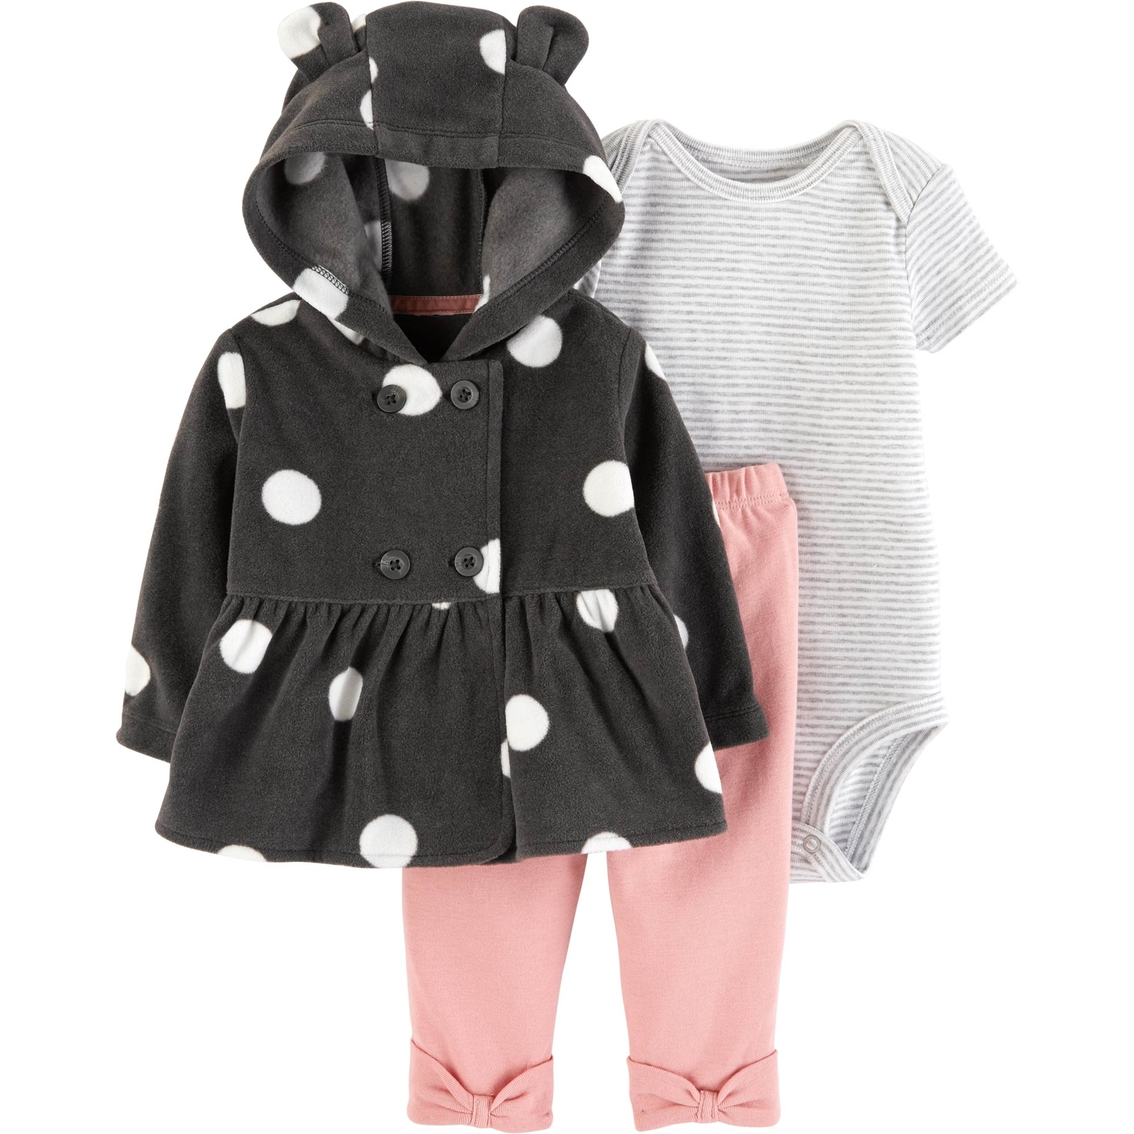 510bb71cf076 Carter s Infant Girls 3 Pc. Little Cardigan Set